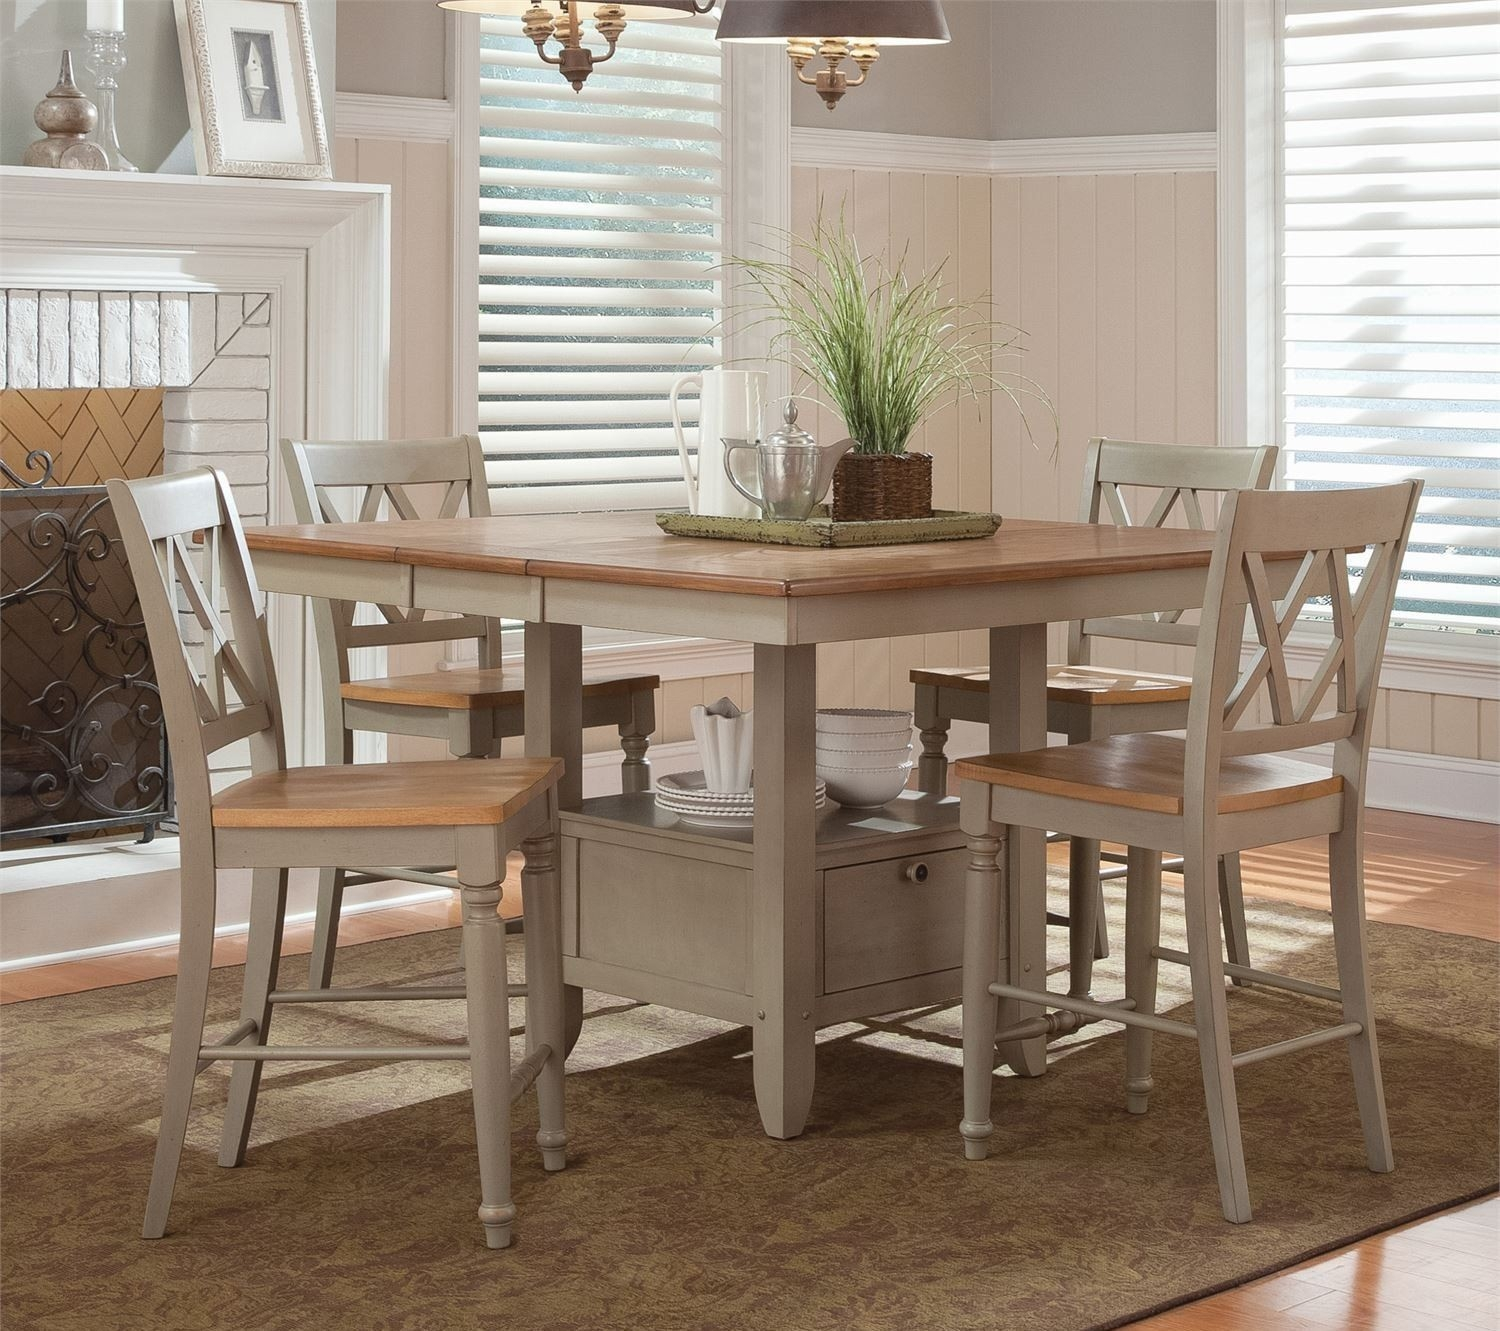 5 Piece Counter Height Dining Table